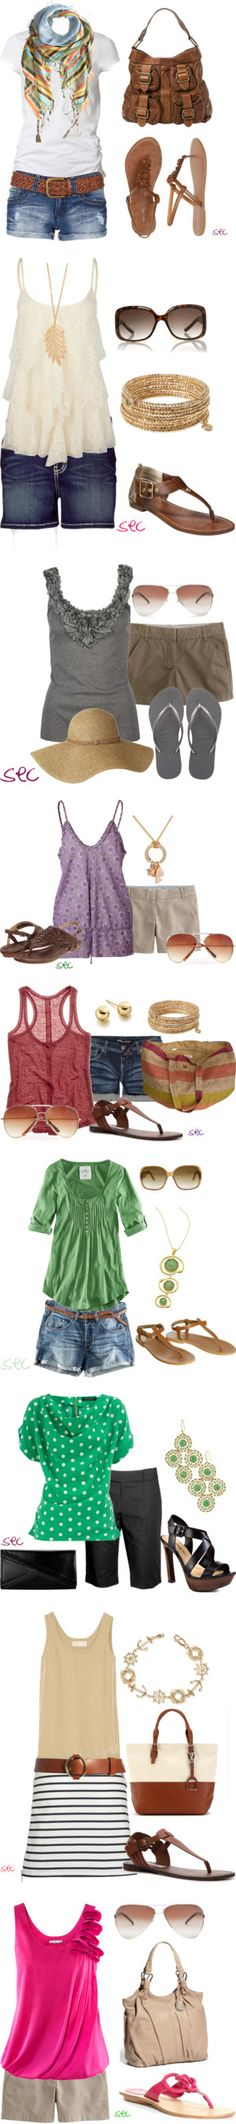 {vacation wishlist - put it all in my suitcase, let's go}